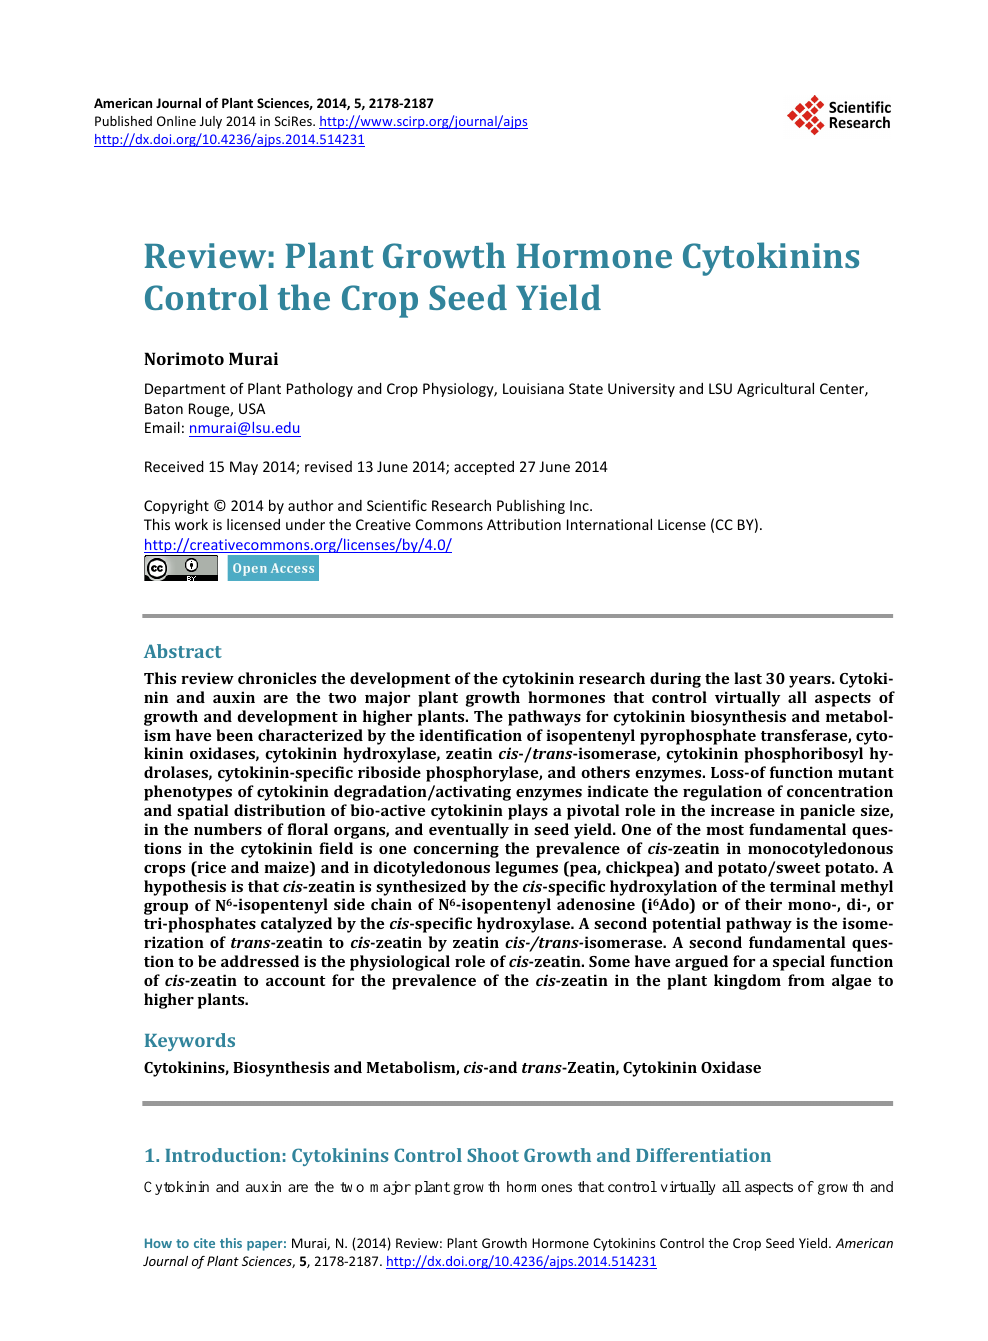 Review: Plant Growth Hormone Cytokinins Control the Crop Seed Yield